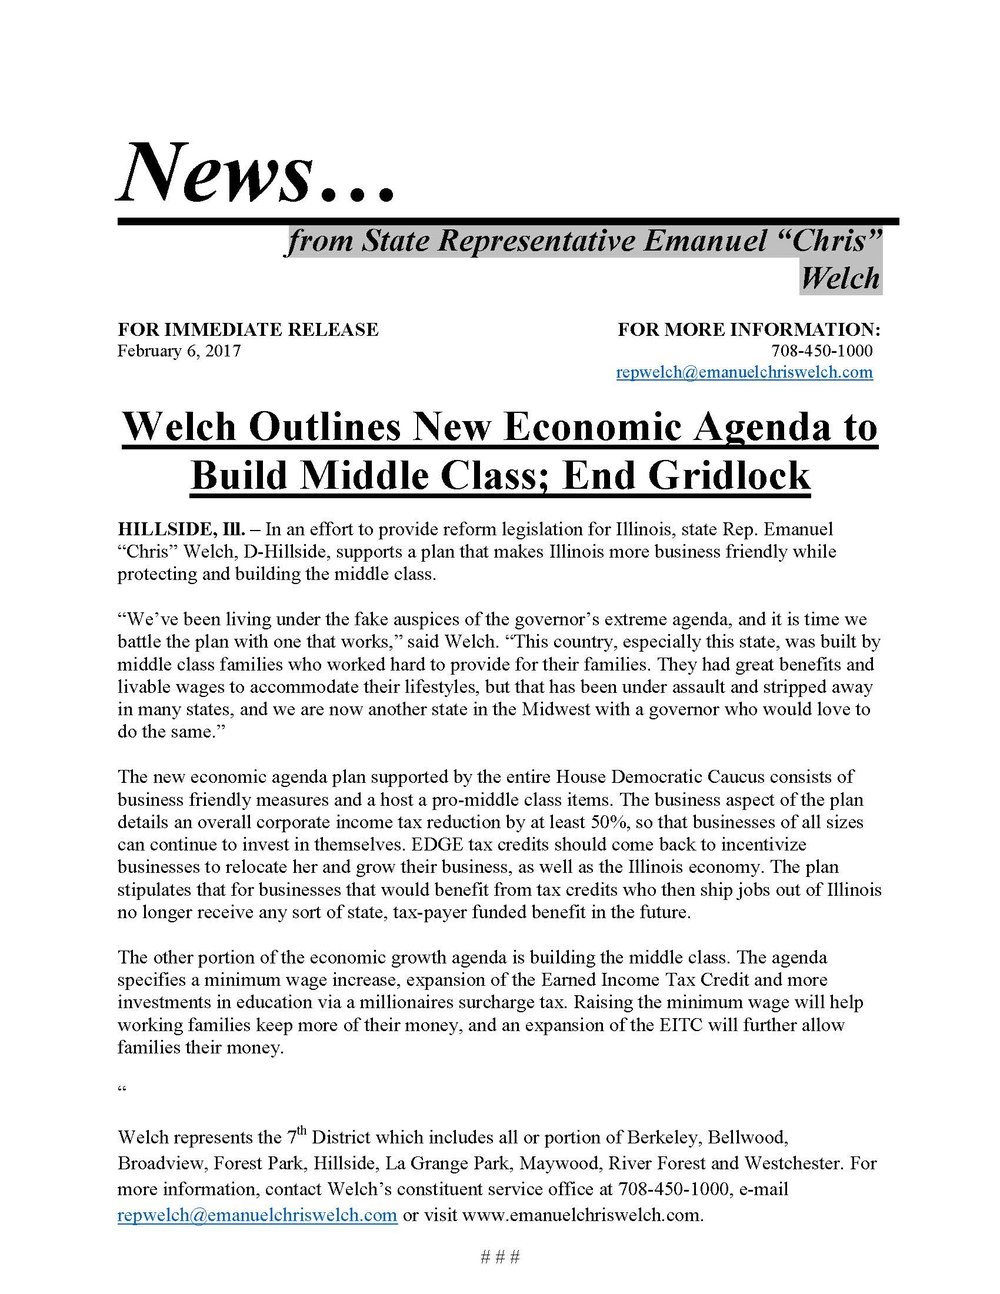 Welch Outlines New Economic Agenda to Build Middle Class; End Gridlock  (February 6, 2017)